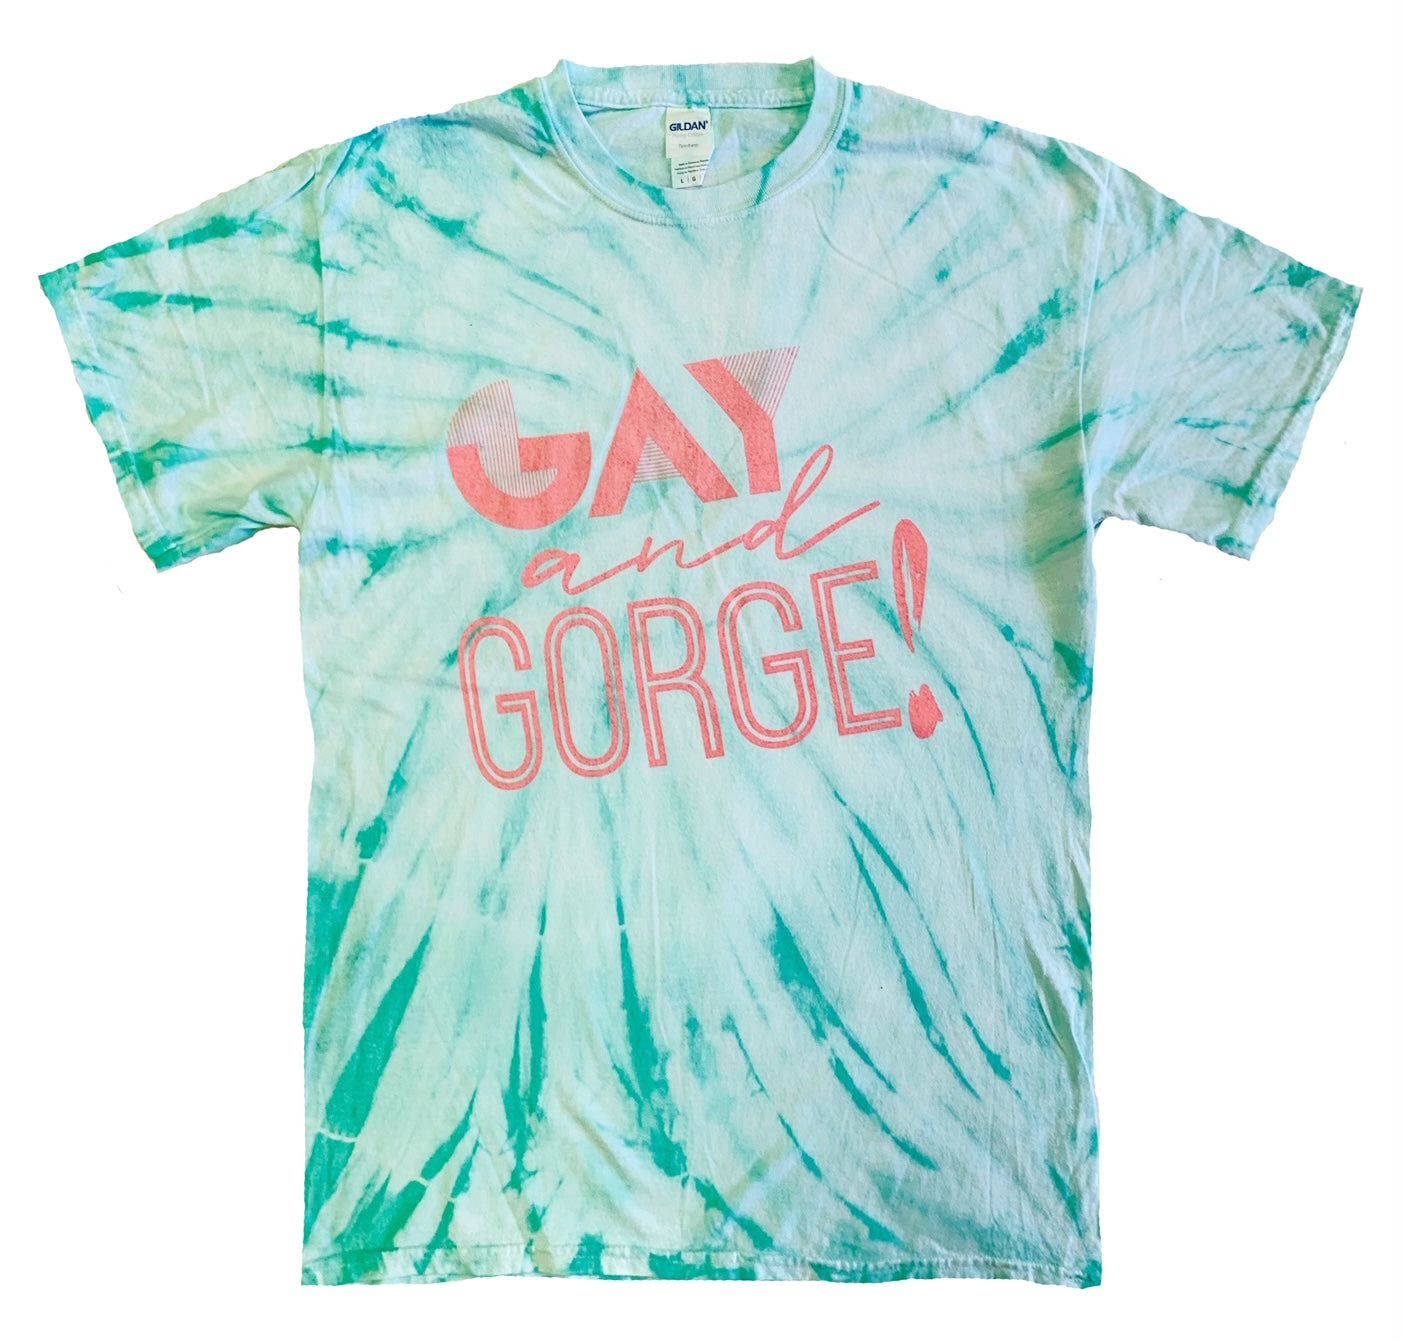 Gay and Gorge! / T-Shirt